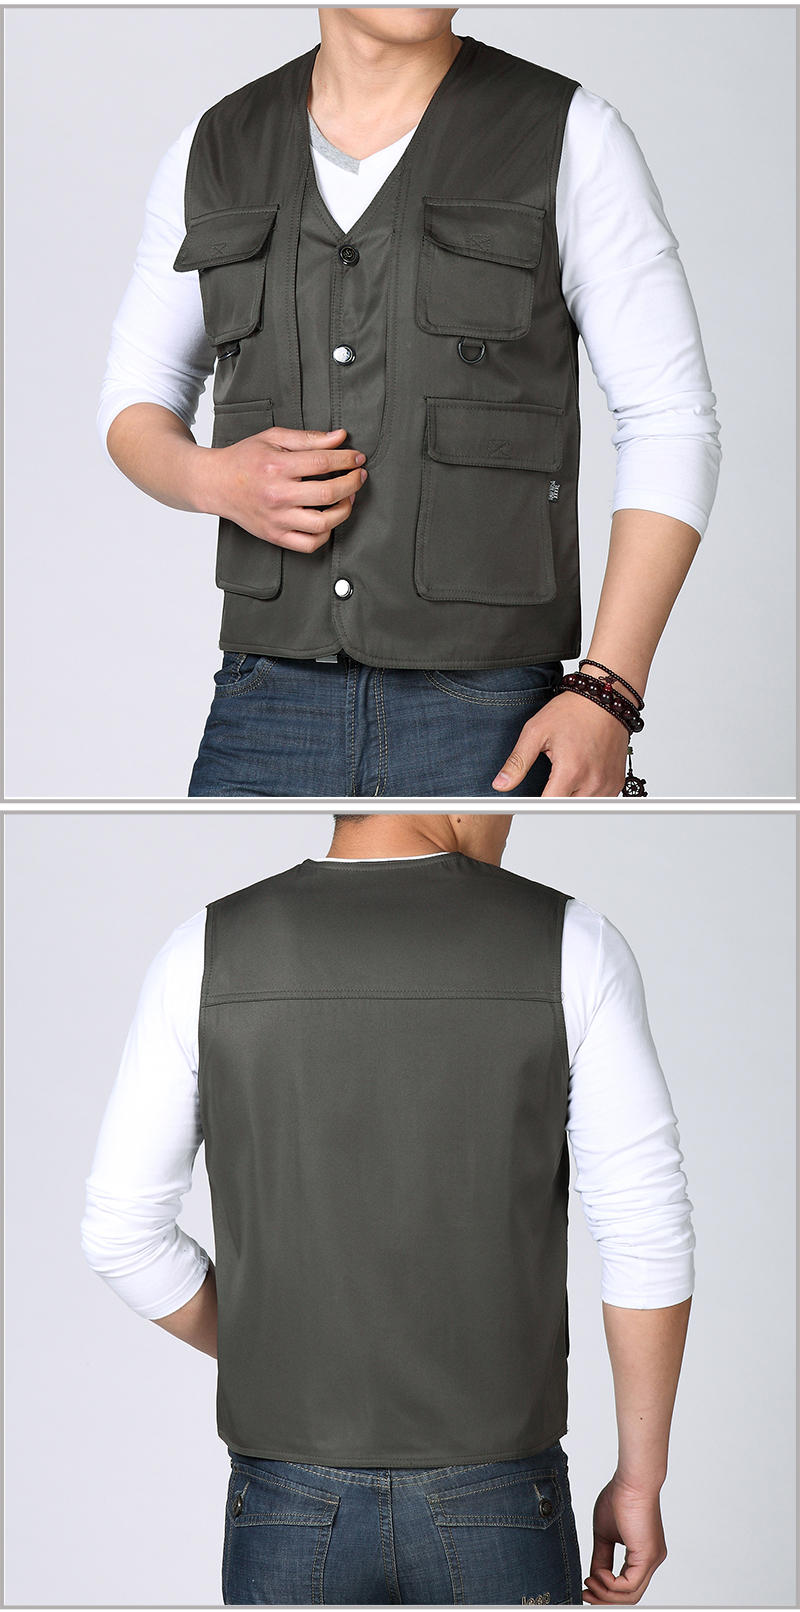 Spring Autumn Man Casual Vest Army Green Black Waistcoat For Men Leisure Gilet Male Herringbone Vest Multi Pockets Waistcoat Mens Weskit (5)